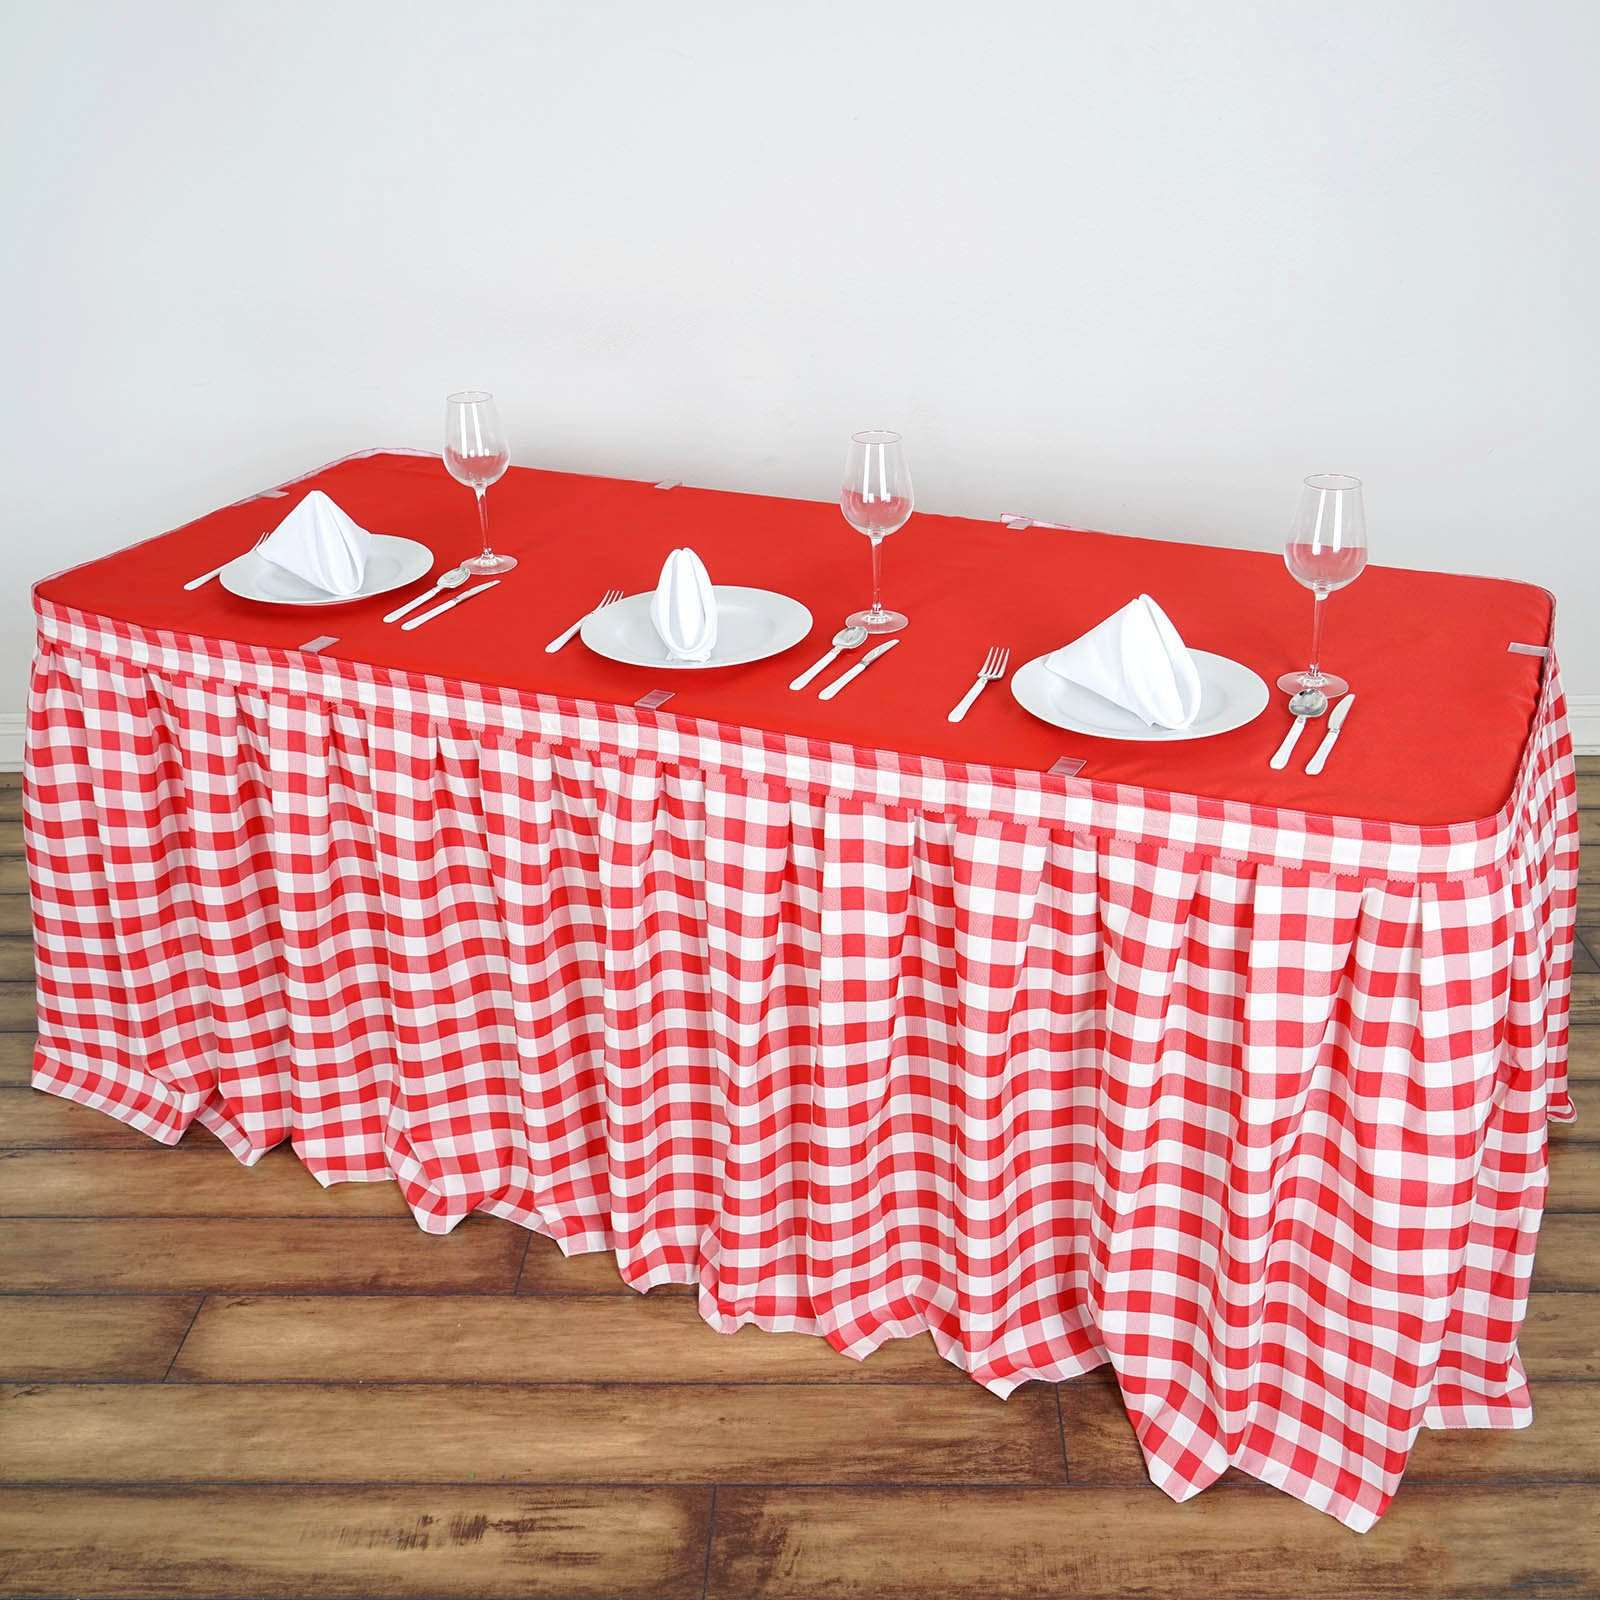 8861df57cf 14FT White/Red Checkered Gingham Polyester Table Skirt For Outdoor Pic –  ChairCoverFactory